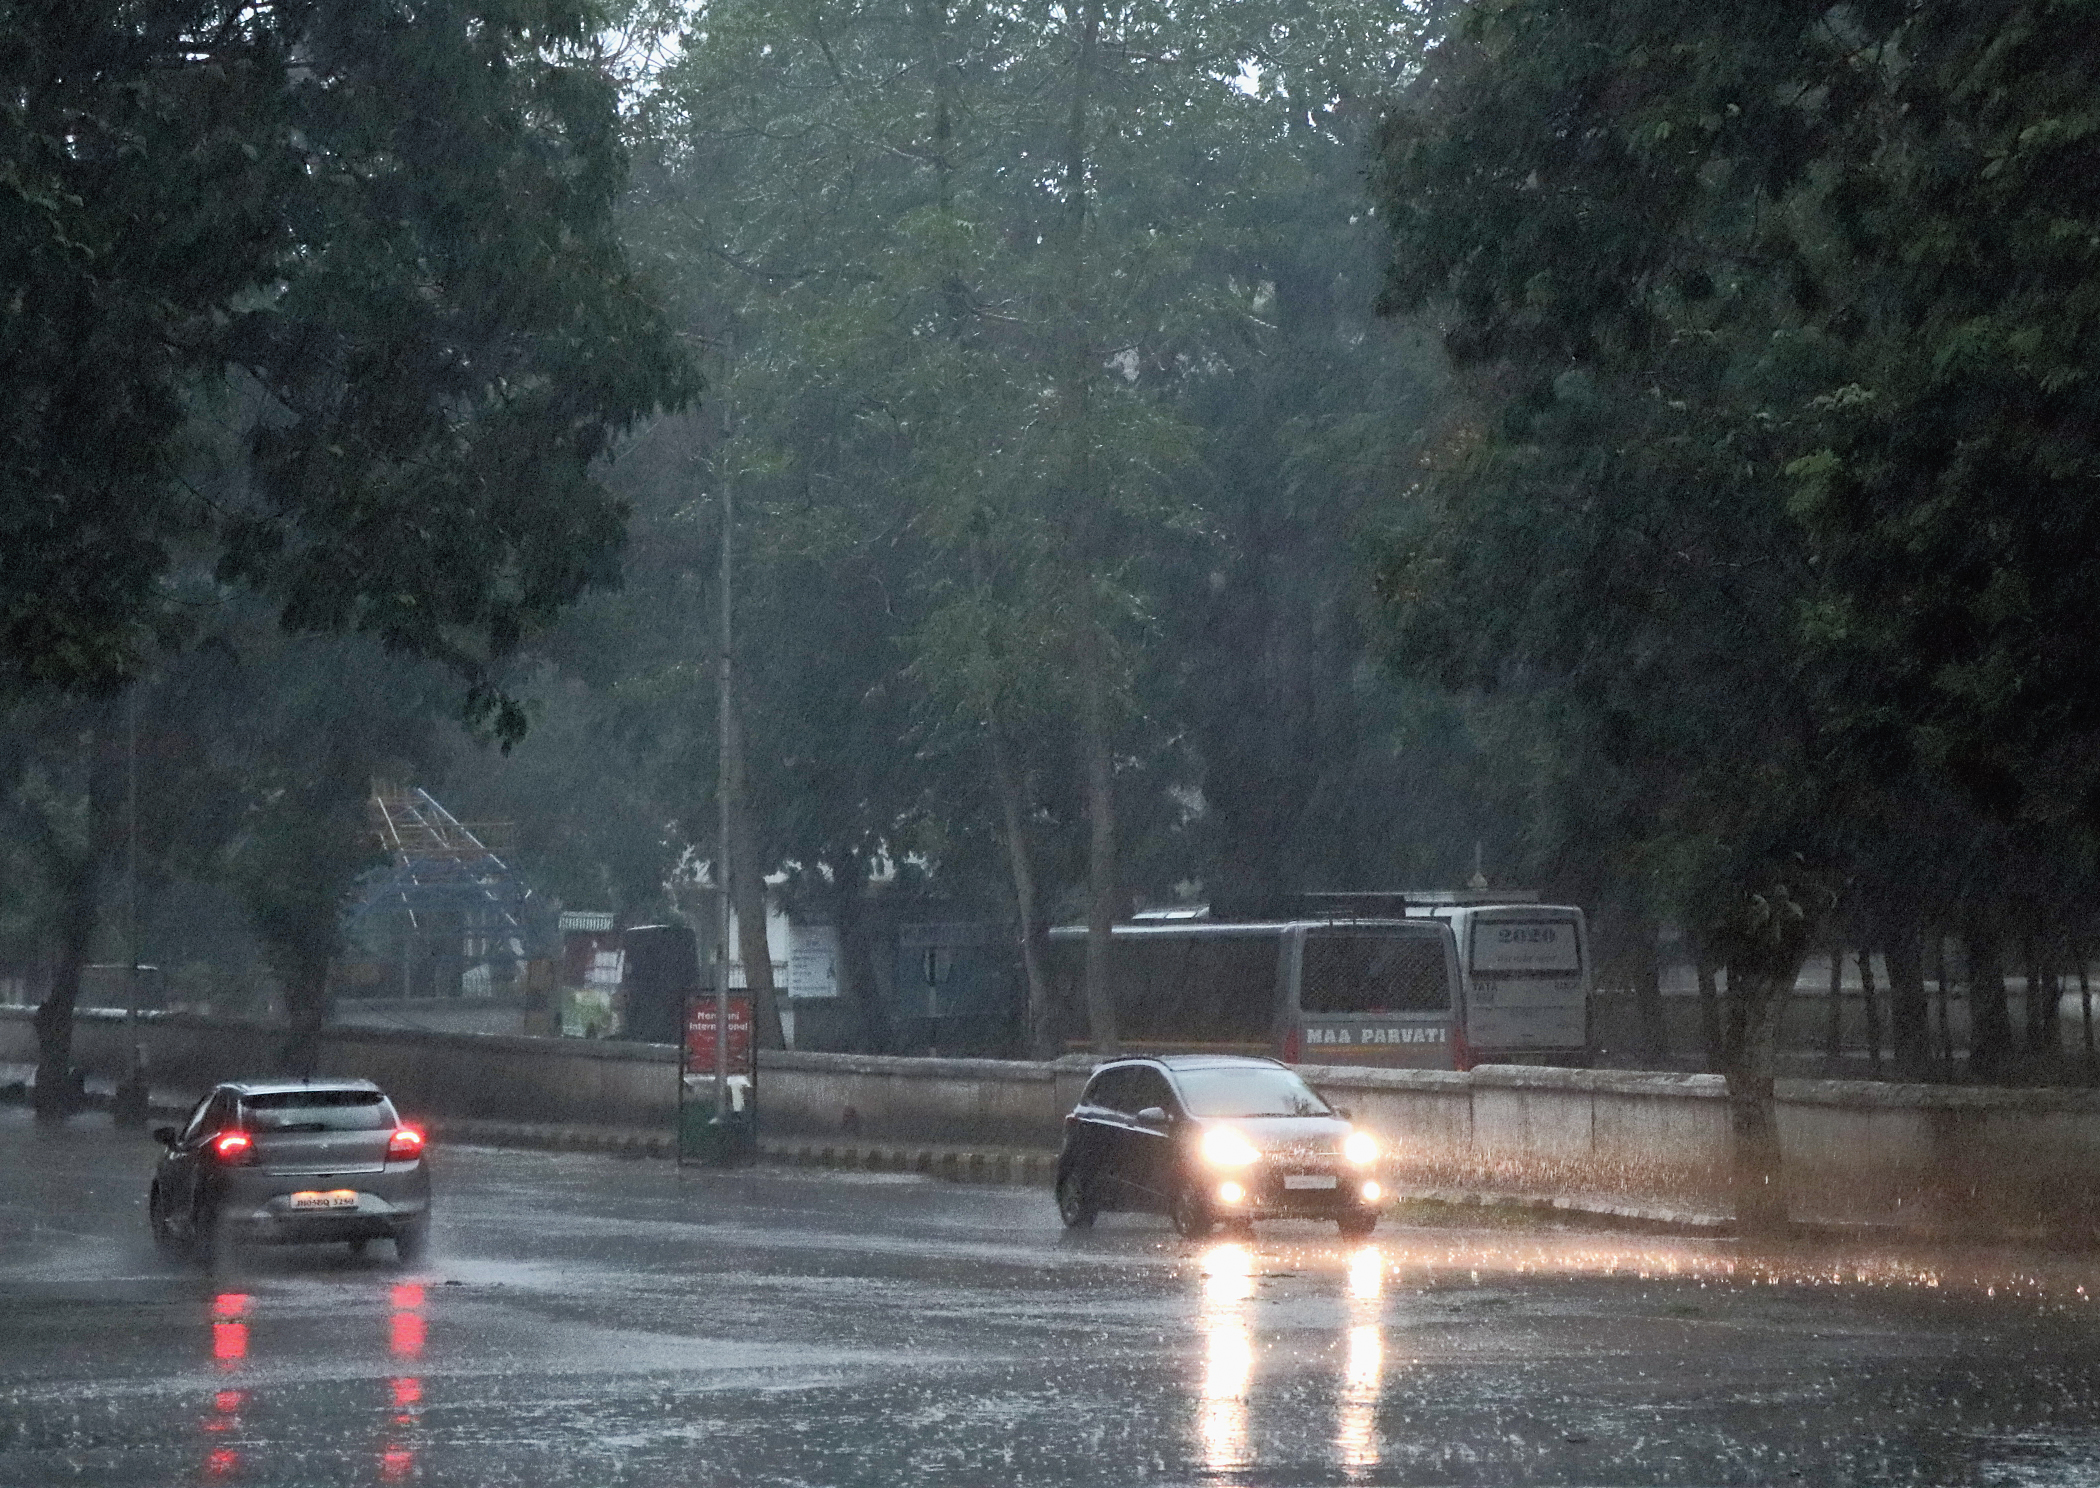 Vehicles move with headlights on during rain at Sakchi in Jamshedpur on Thursday afternoon.